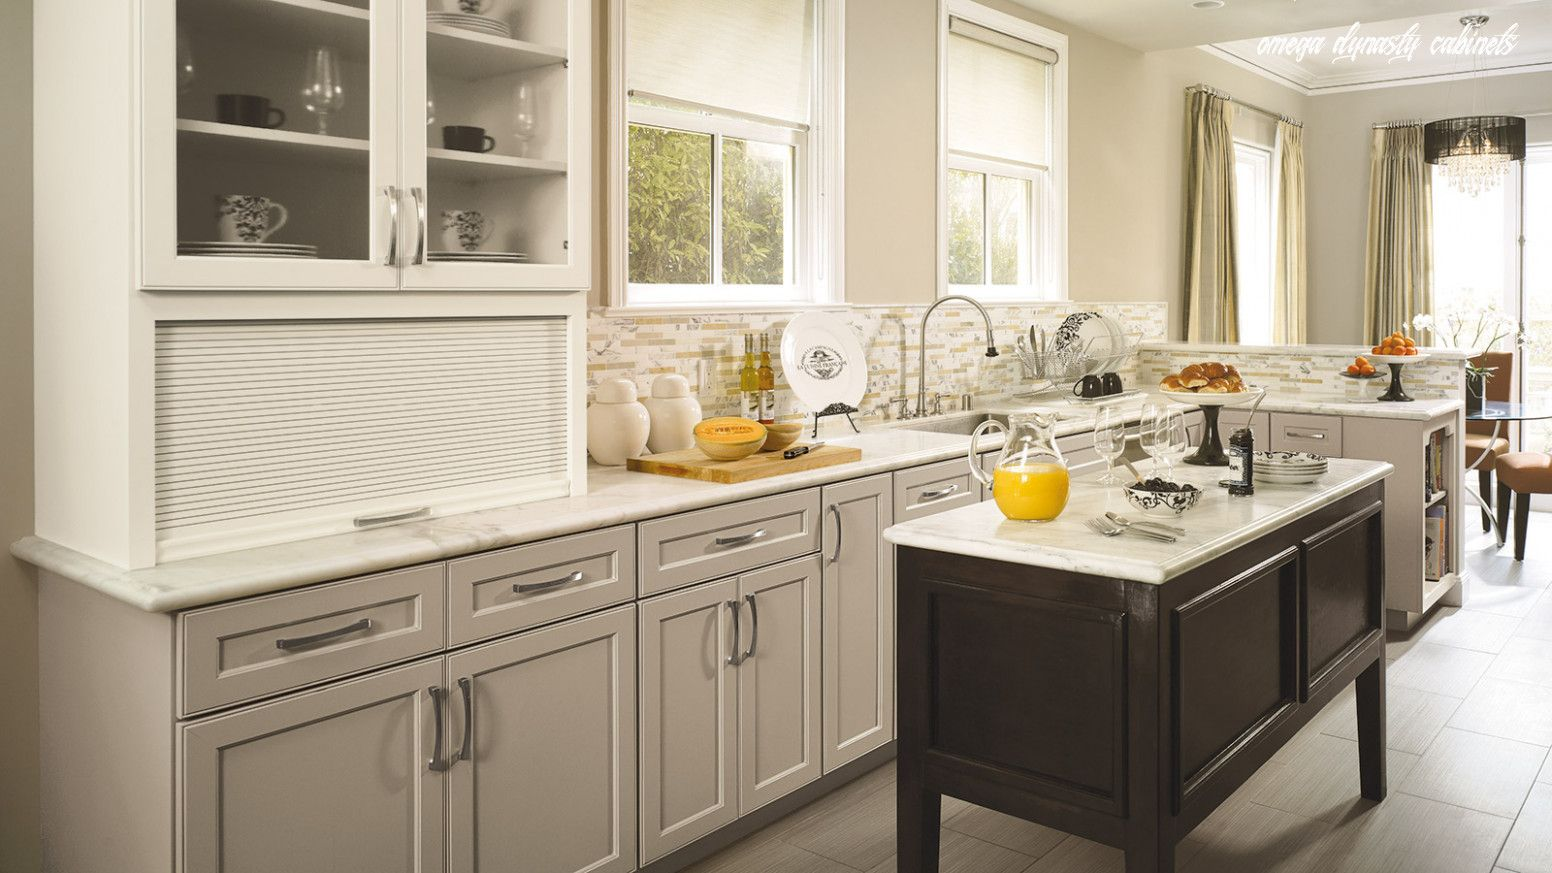 10 Outrageous Ideas For Your Omega Dynasty Cabinets In 2020 Kitchen Cabinet Design Photos Timeless Kitchen Types Of Kitchen Cabinets